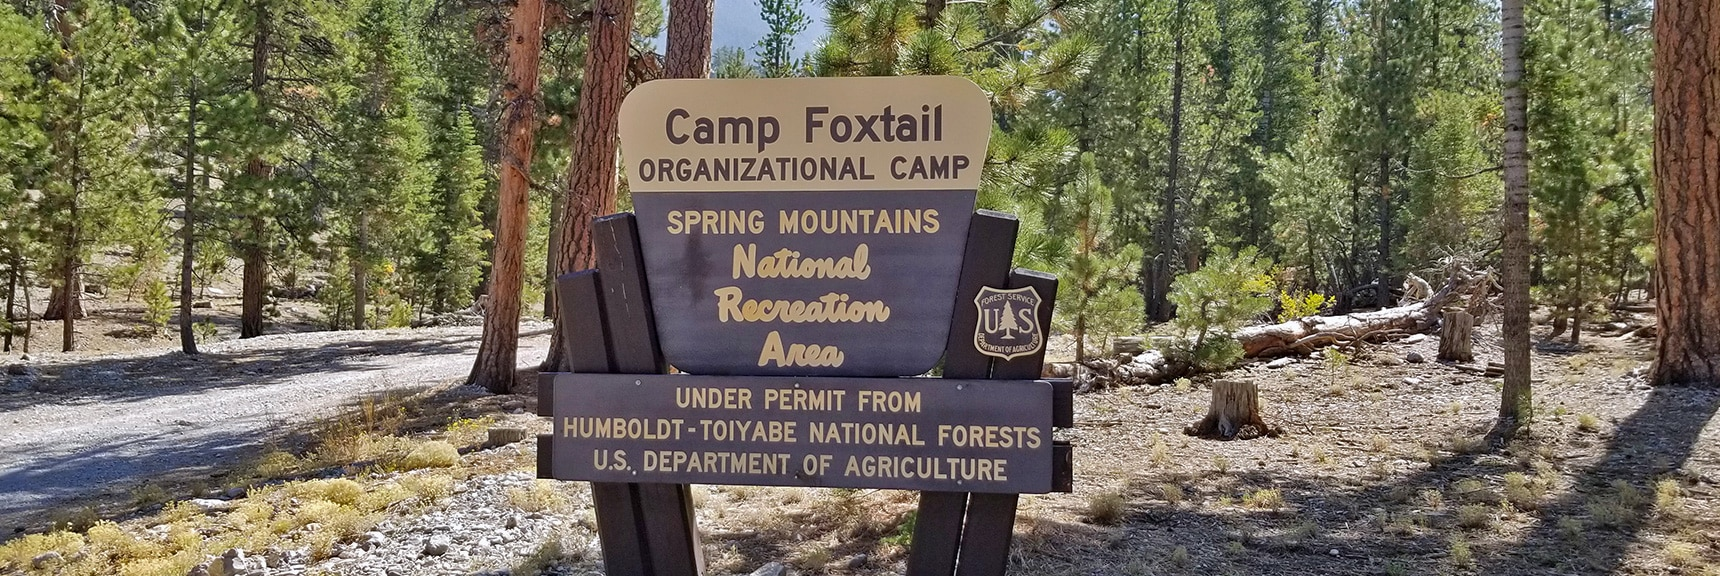 Entrance Road to Camp Foxtail Girl Scouts Camp   Foxtail Canyon   Foxtail Girl Scouts Camp   Mt Charleston Wilderness   Spring Mountains, Nevada